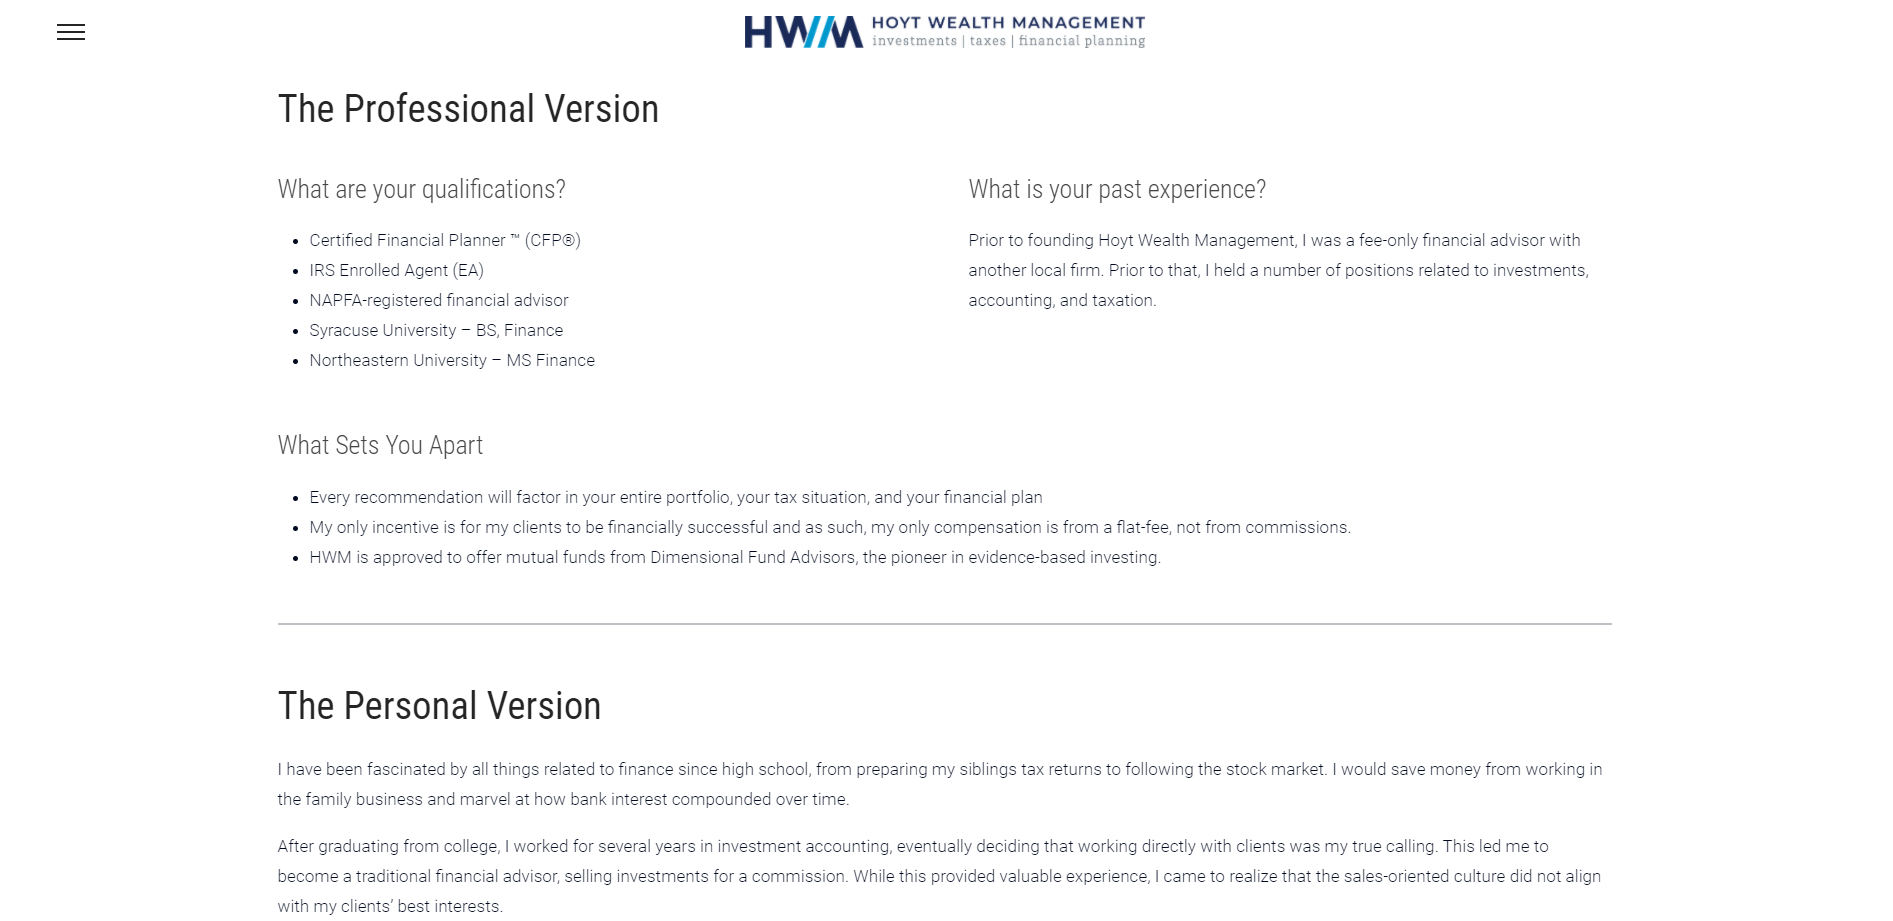 Hoyt Wealth Management Personal Page